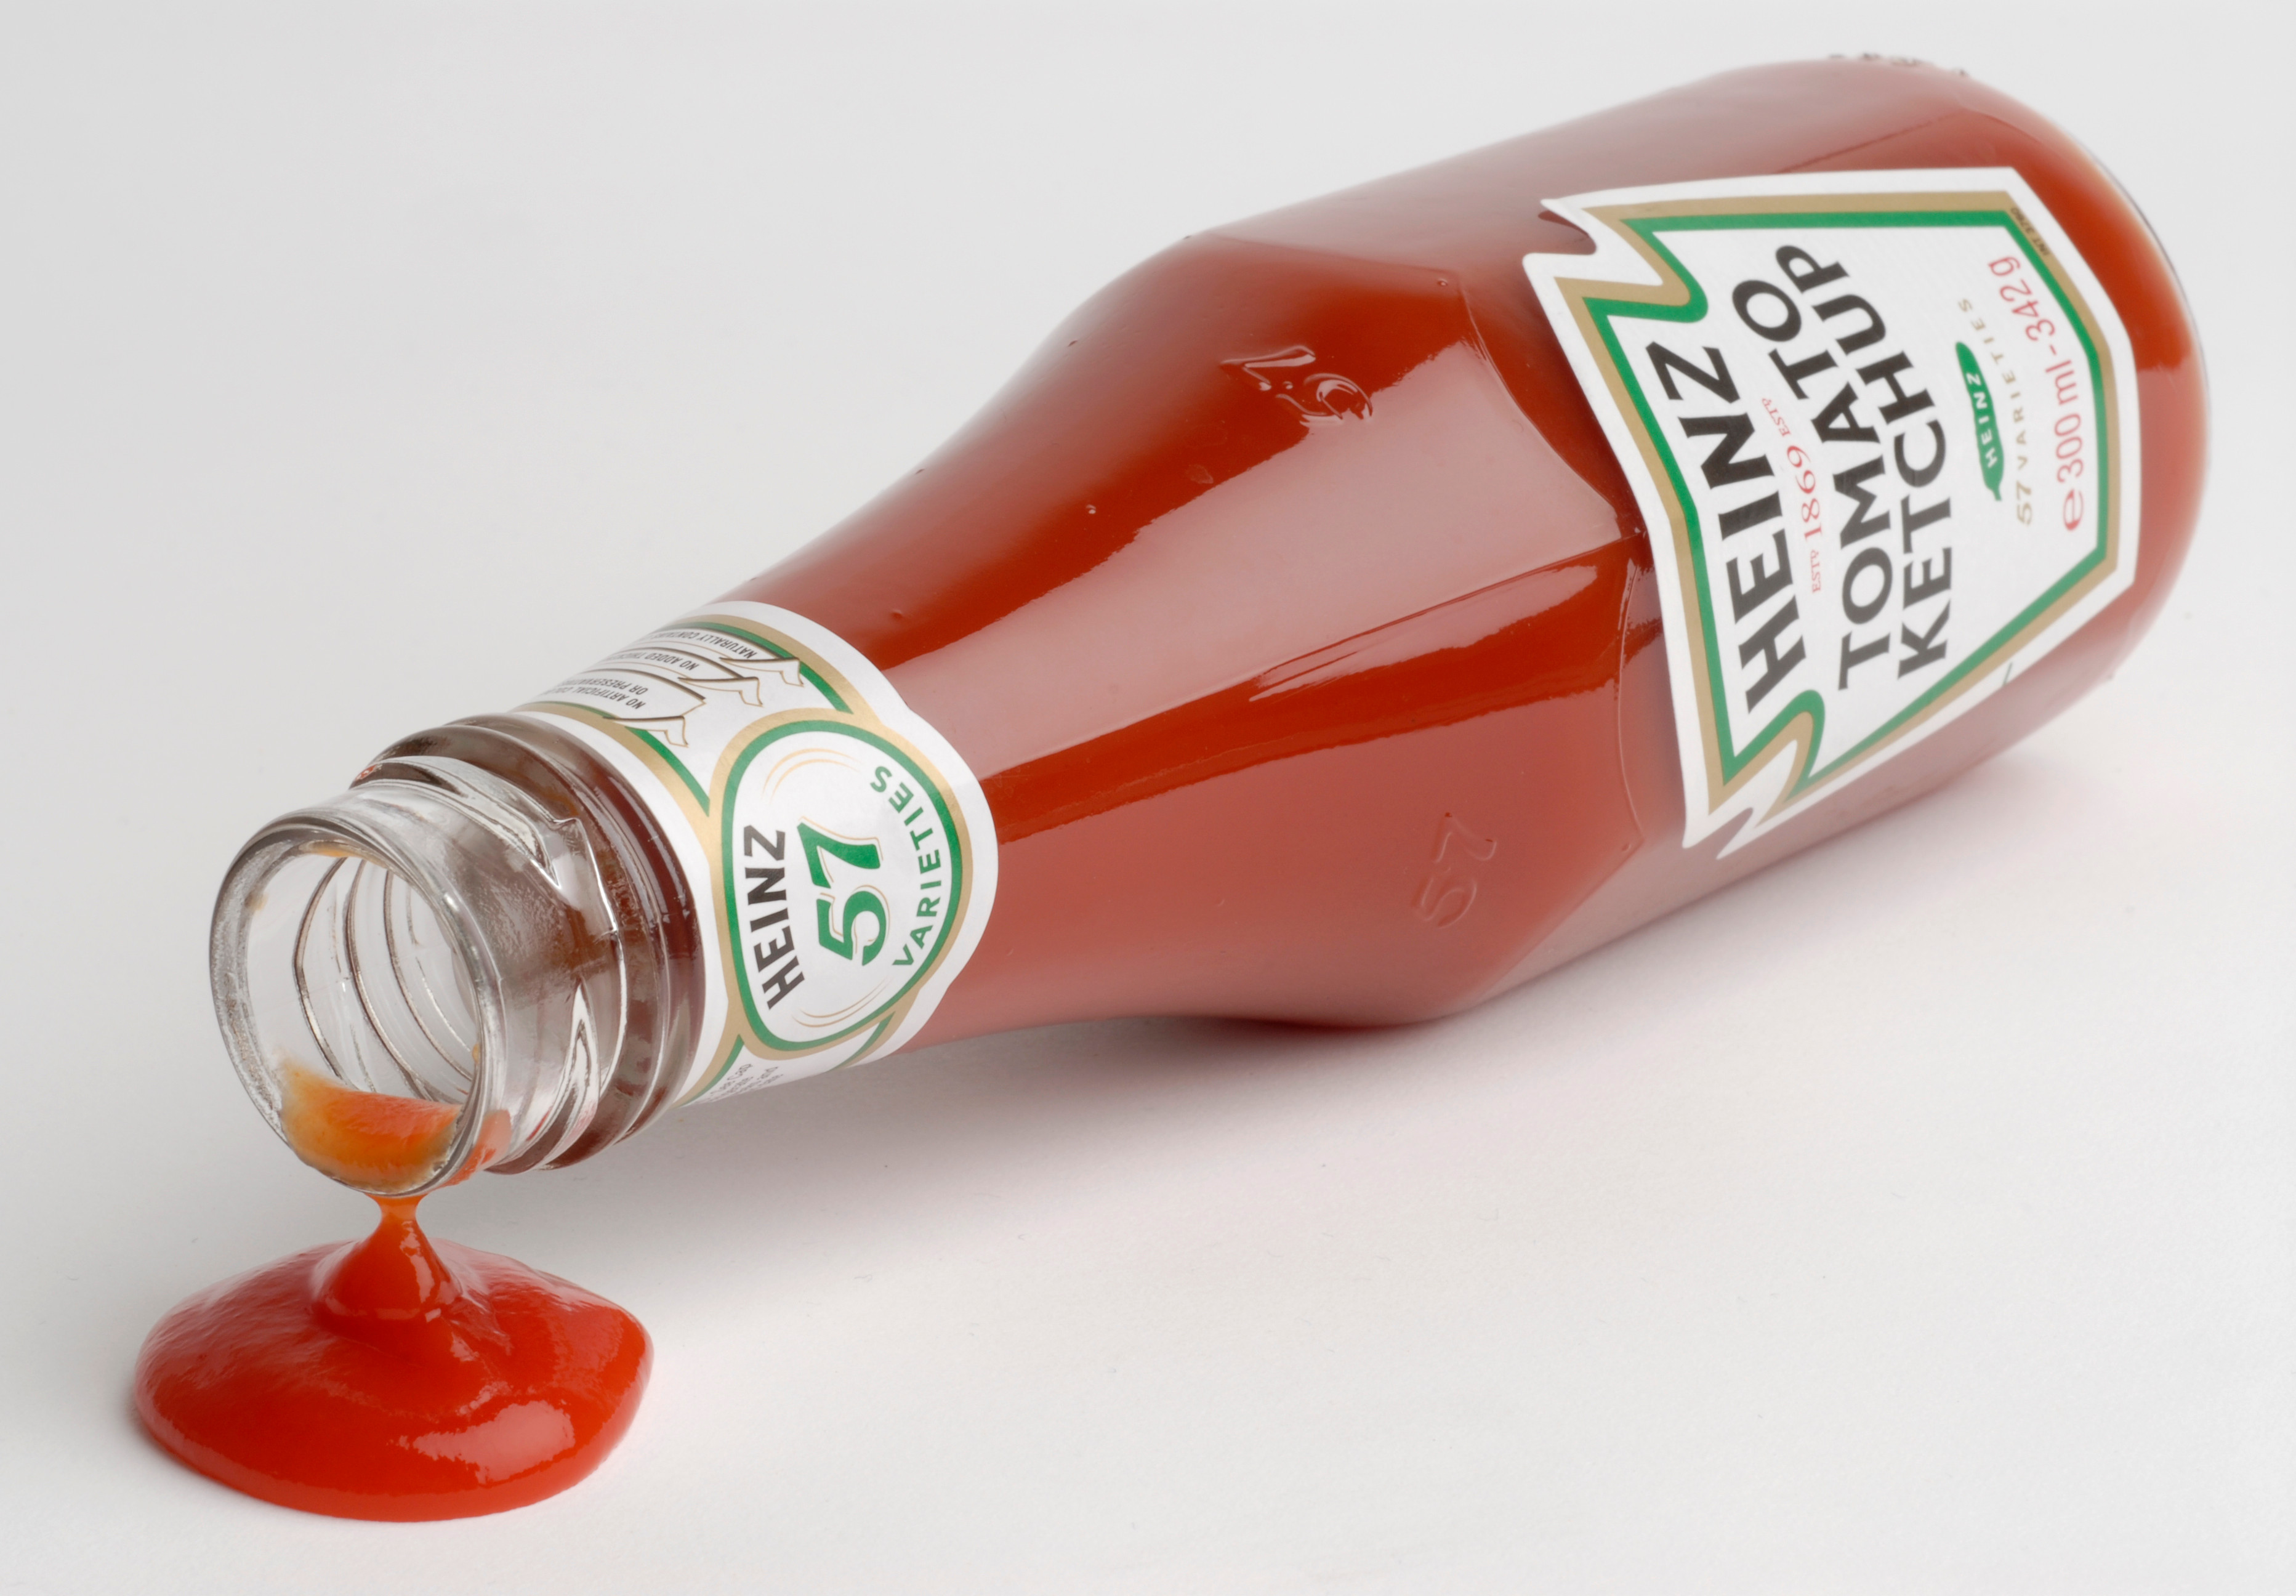 What Medical Device Designers Can Learn from a Heinz Ketchup Bottle |  mddionline.com